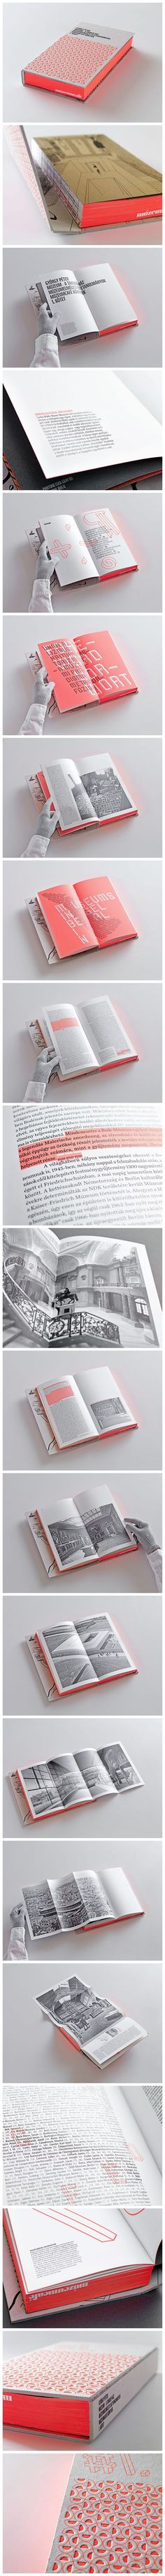 MúzeumCafé Books #1 Museum – A House for Learning Museum Theoretical Case Studies This publication is the first volume of a Hungarian museum professional series published by the Museum of Fine Arts, Budapest. It is written by university professor Péter György, director of ELTE's Institute for Art Theory and Media Studies, and Doctor of the Hungarian Academy of Sciences.: